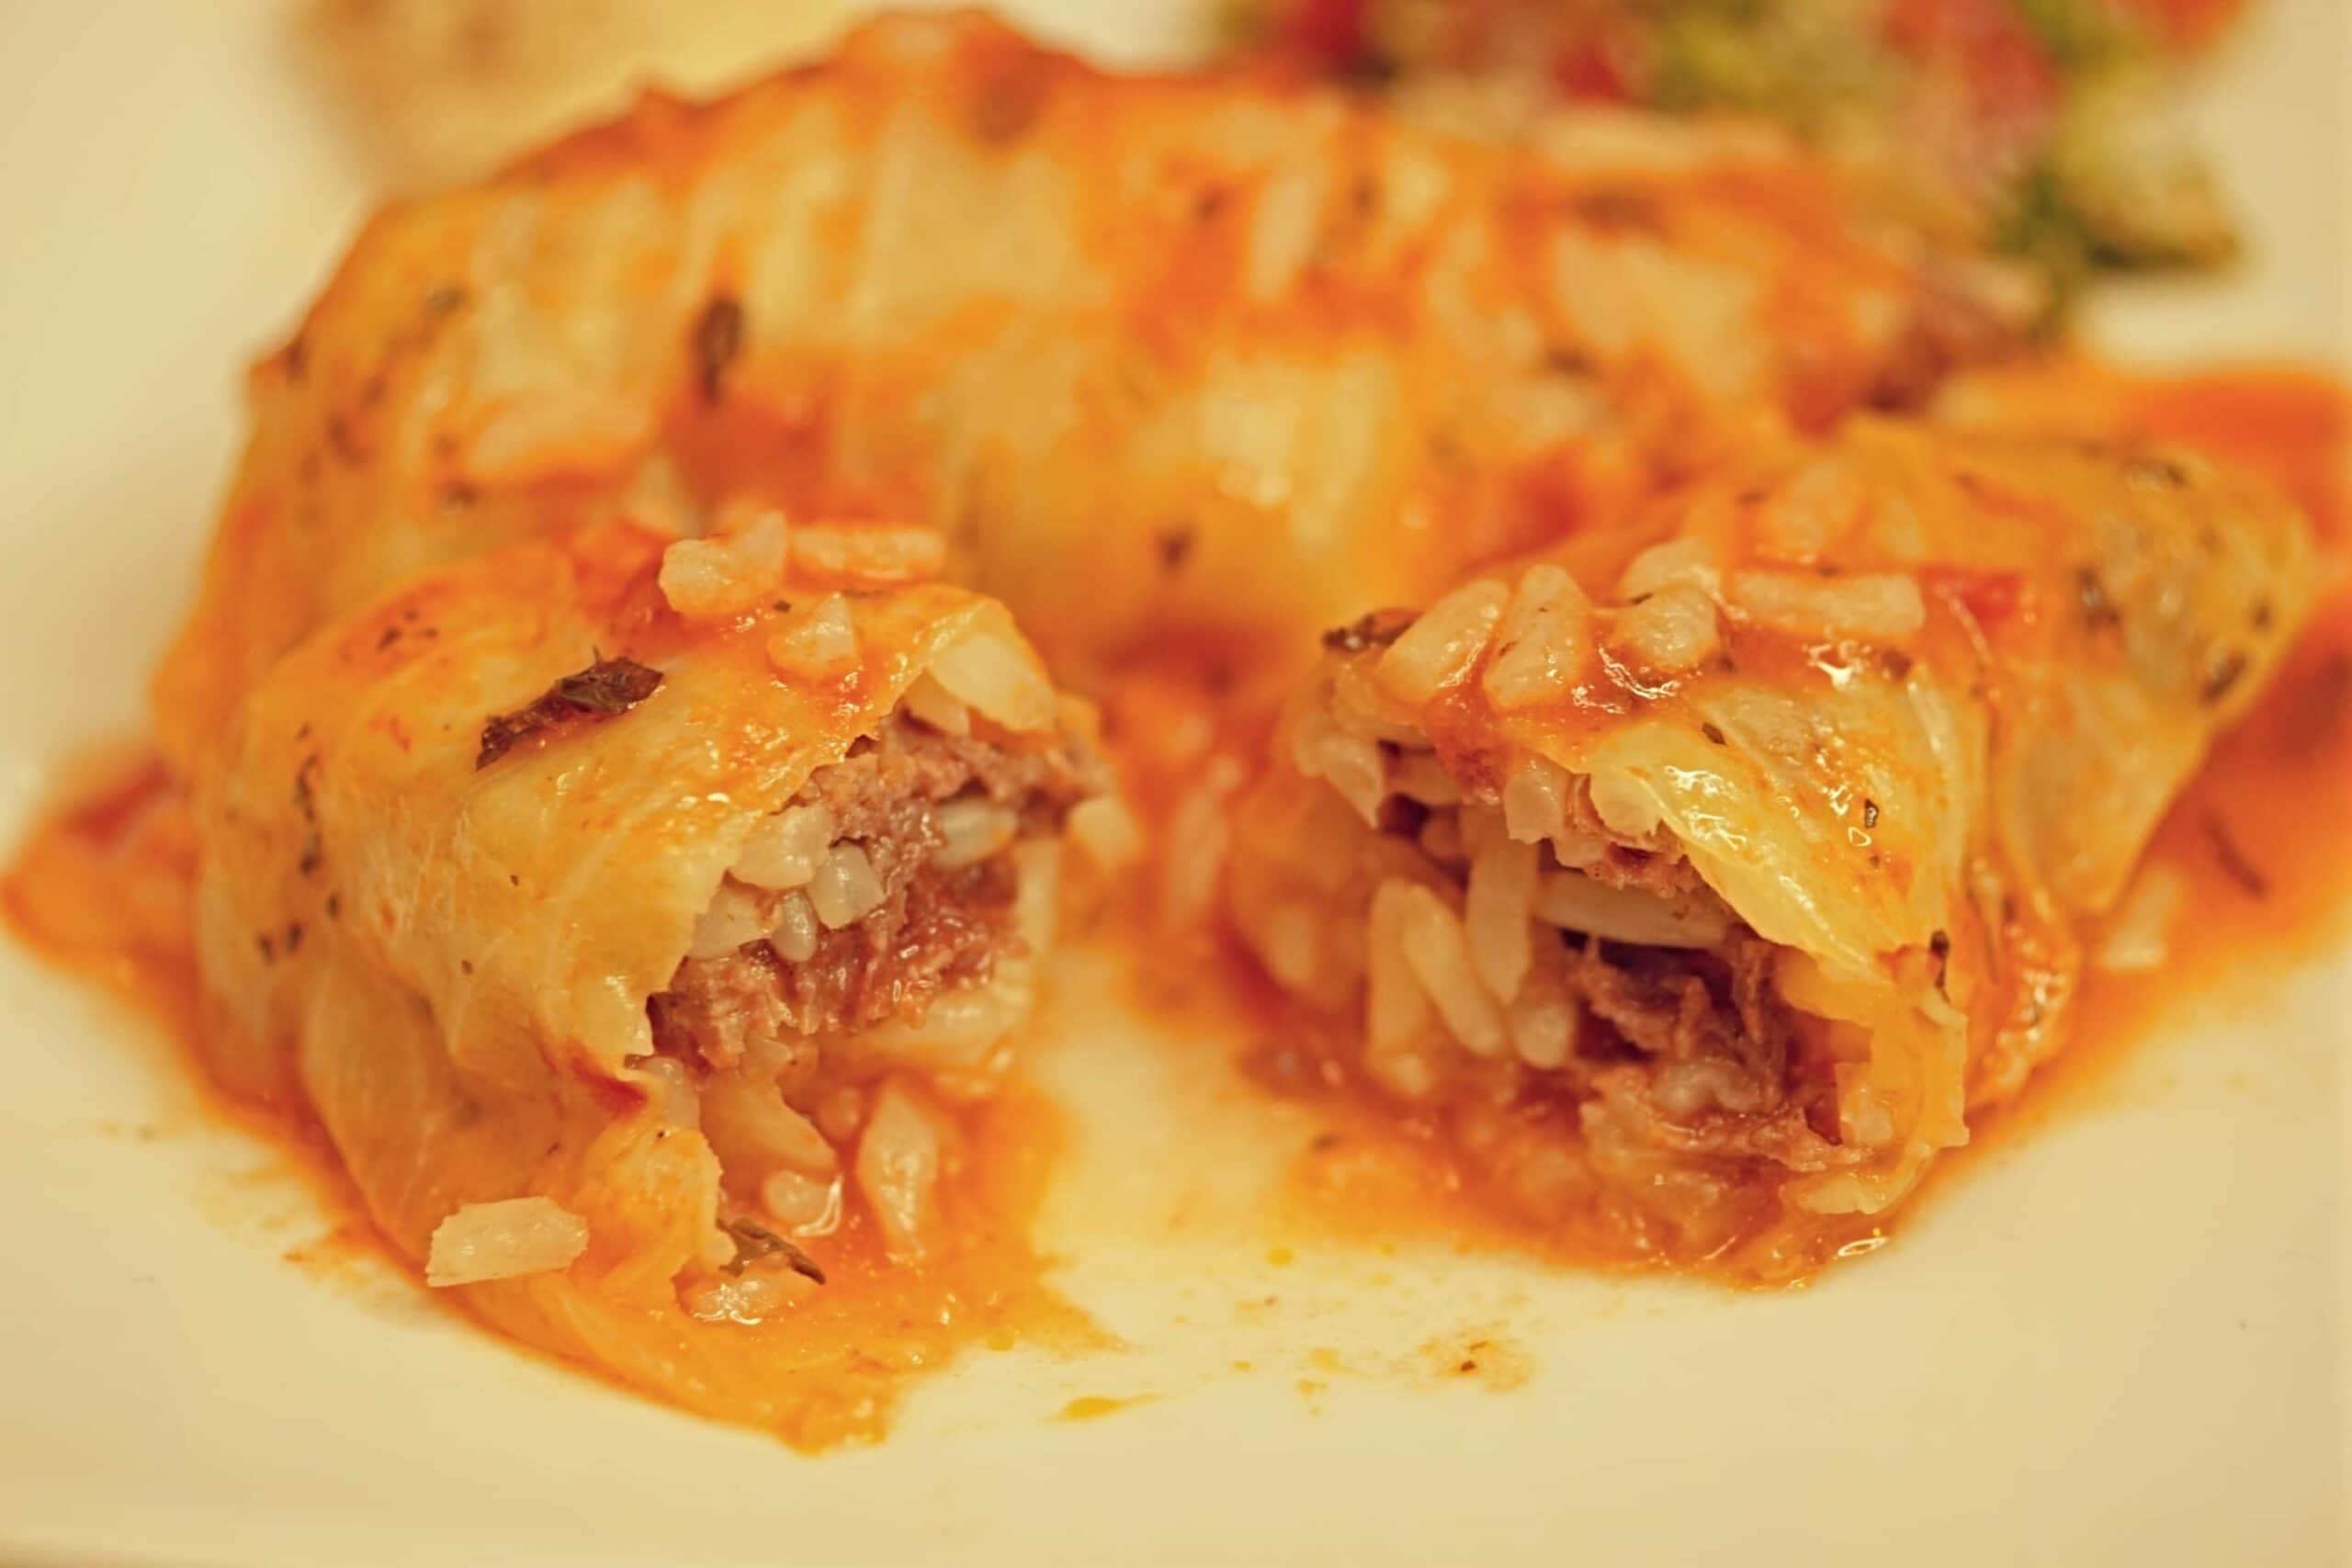 Stuffed with a mixture of white rice, ground beef and Mediterranean spices, these cabbage rolls are cooked in tomato sauce and spiced with lemon, mint and garlic